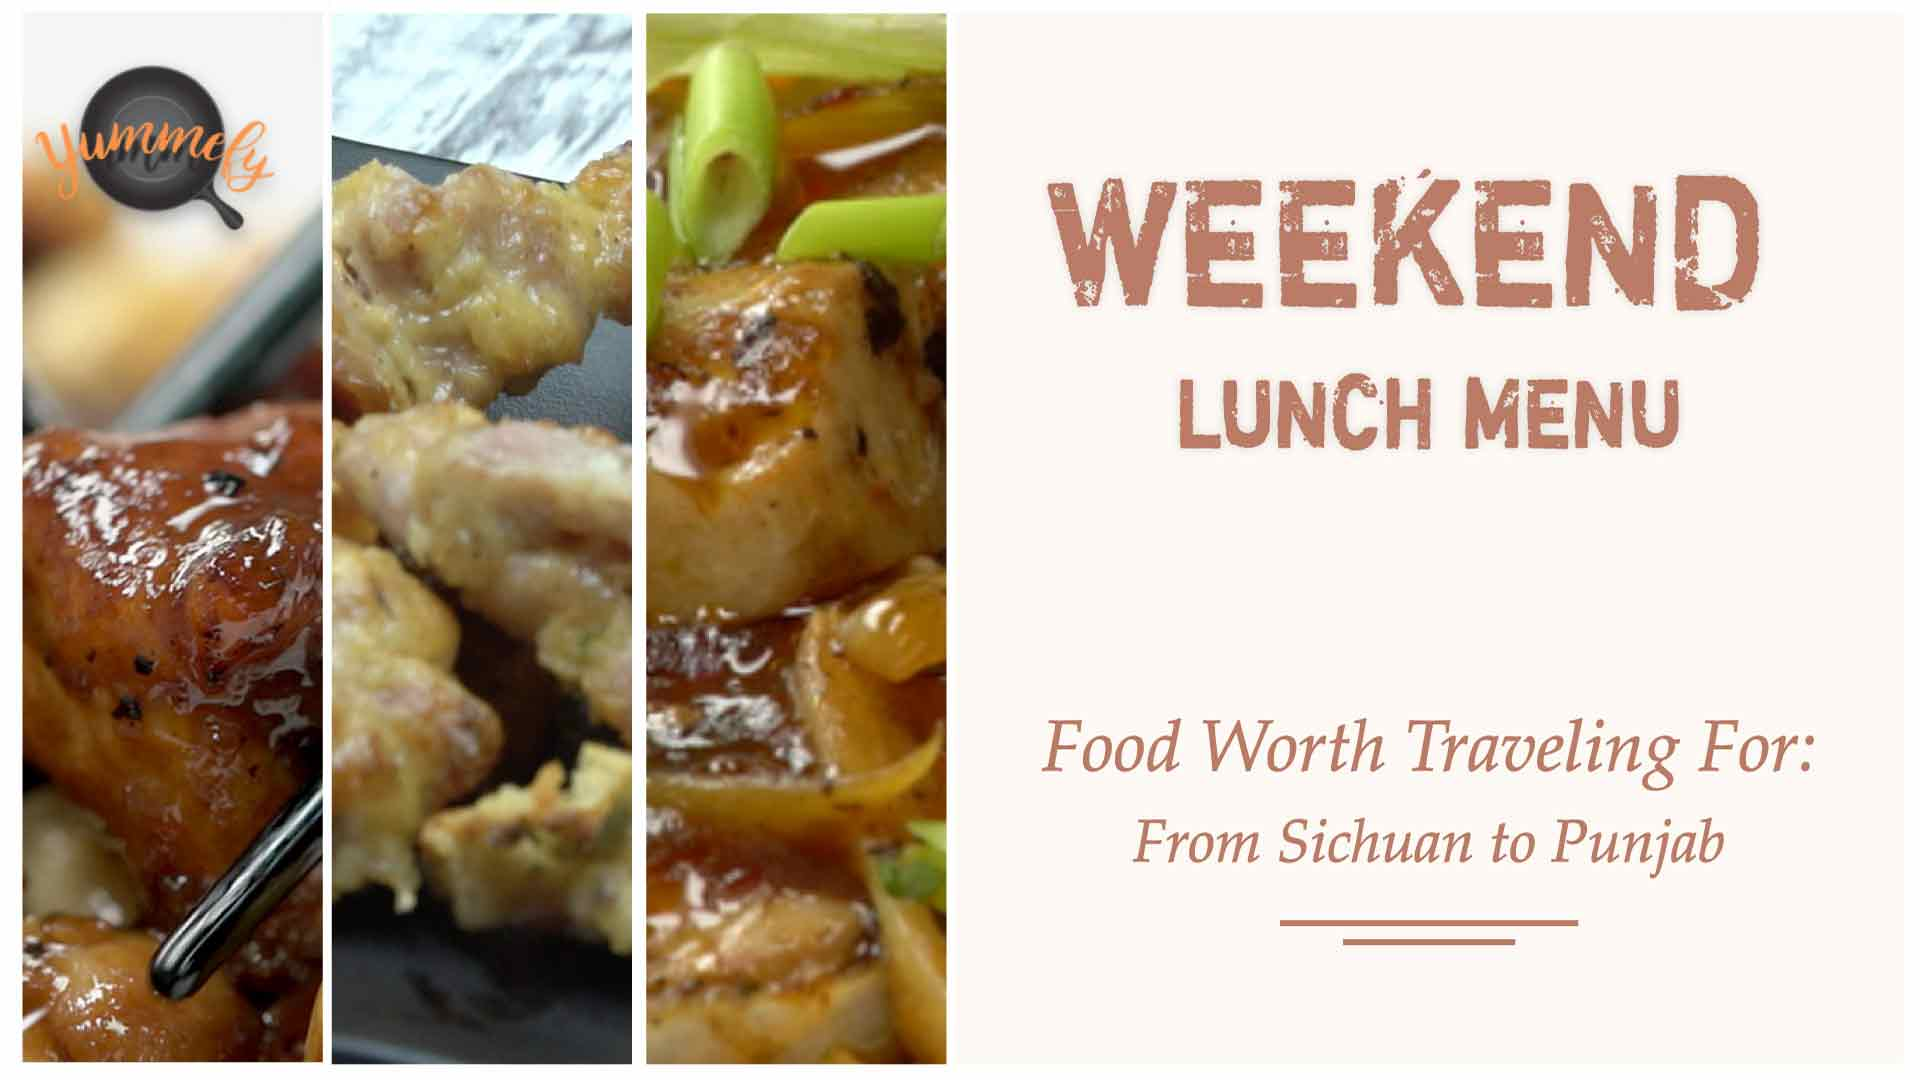 Travel  From Sichuan to Punjab this Weekend with Yummefy